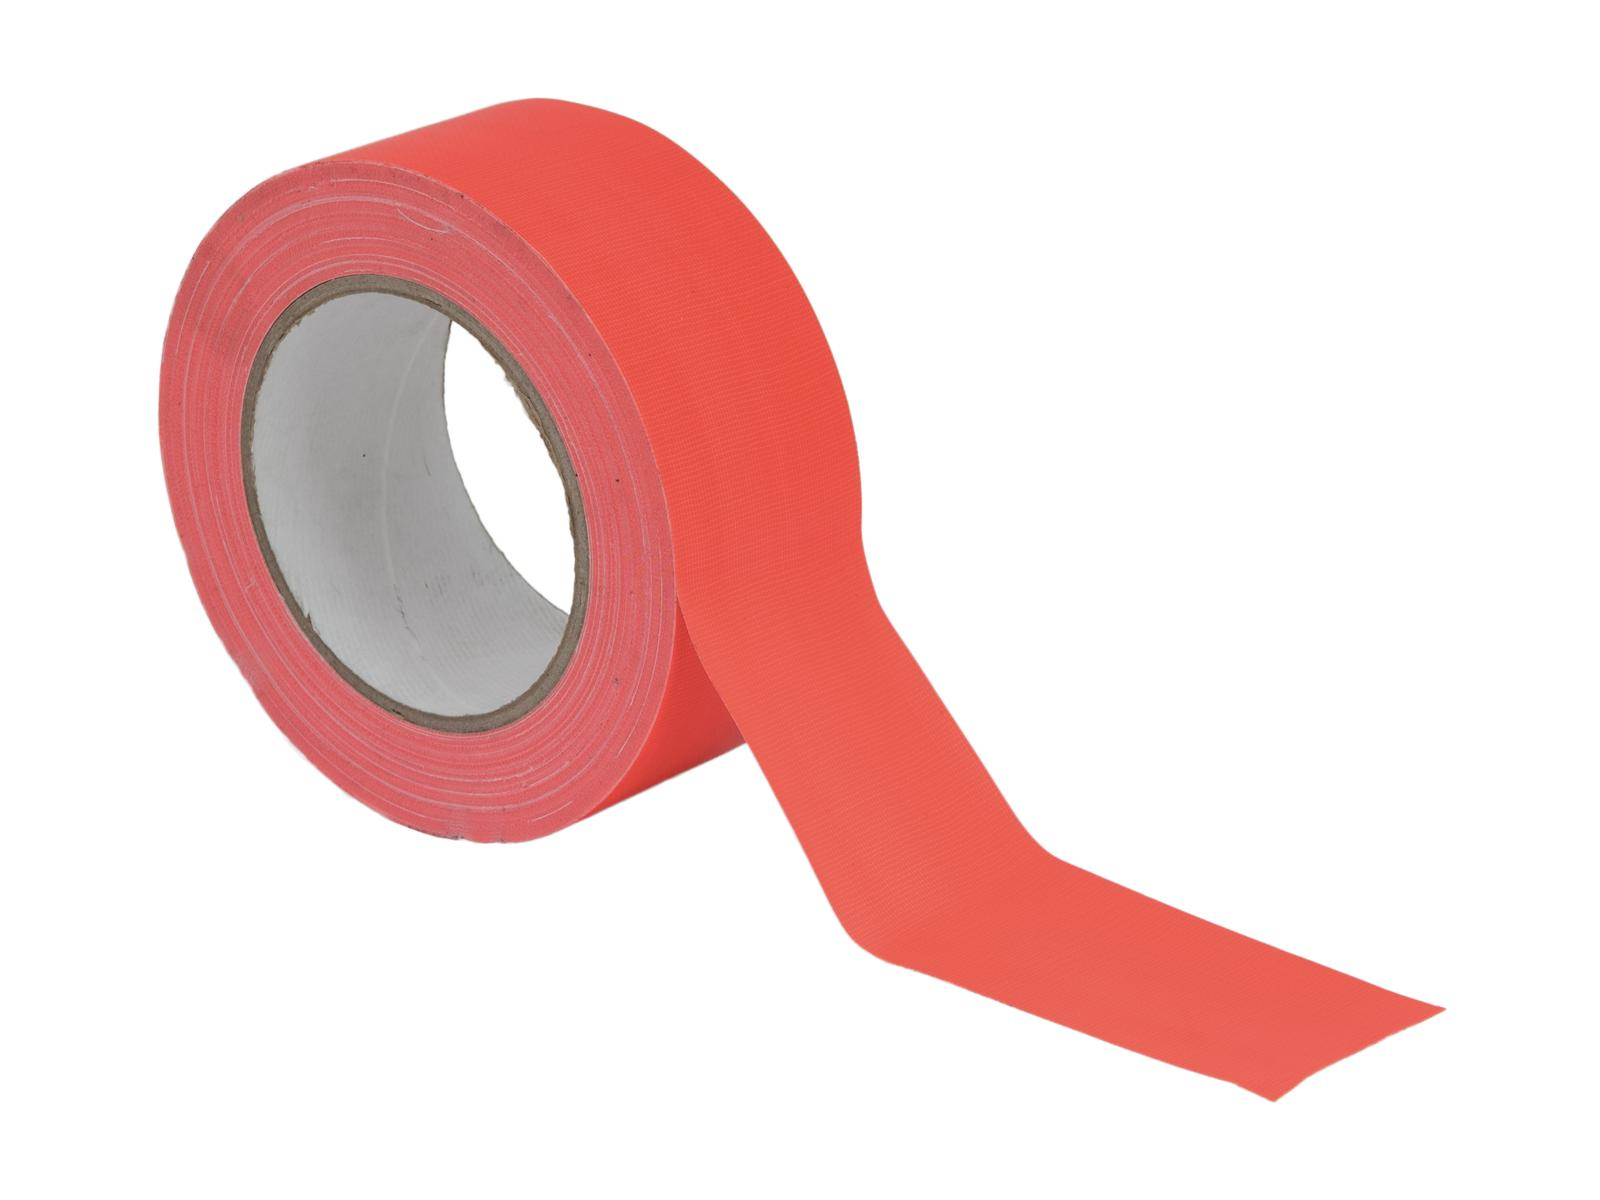 ACCESSORIO ai gaffa Tape 50mm x 25m neon-orange uv active